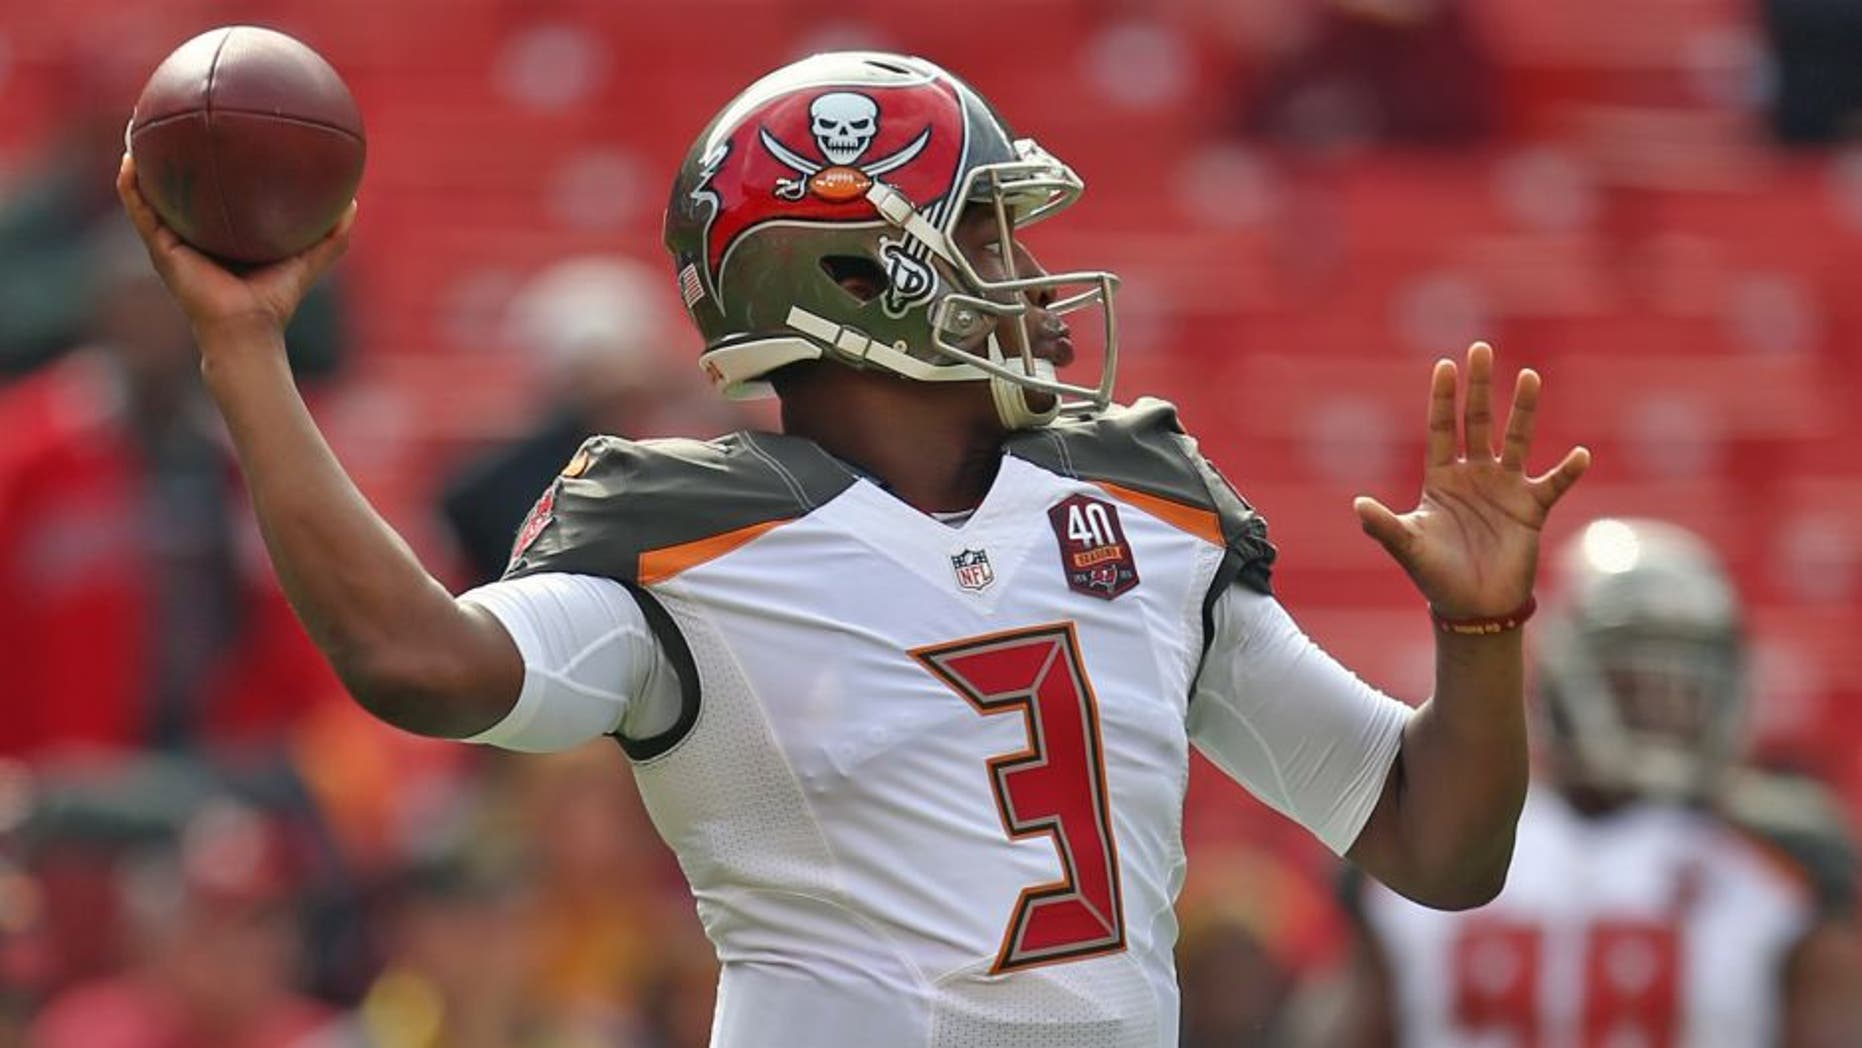 LANDOVER, MD - OCTOBER 25: Quarterback Jameis Winston #3 of the Tampa Bay Buccaneers warms up prior to the start of a game against the Washington Redskins at FedExField on October 25, 2015 in Landover, Maryland. (Photo by Matt Hazlett/Getty Images)